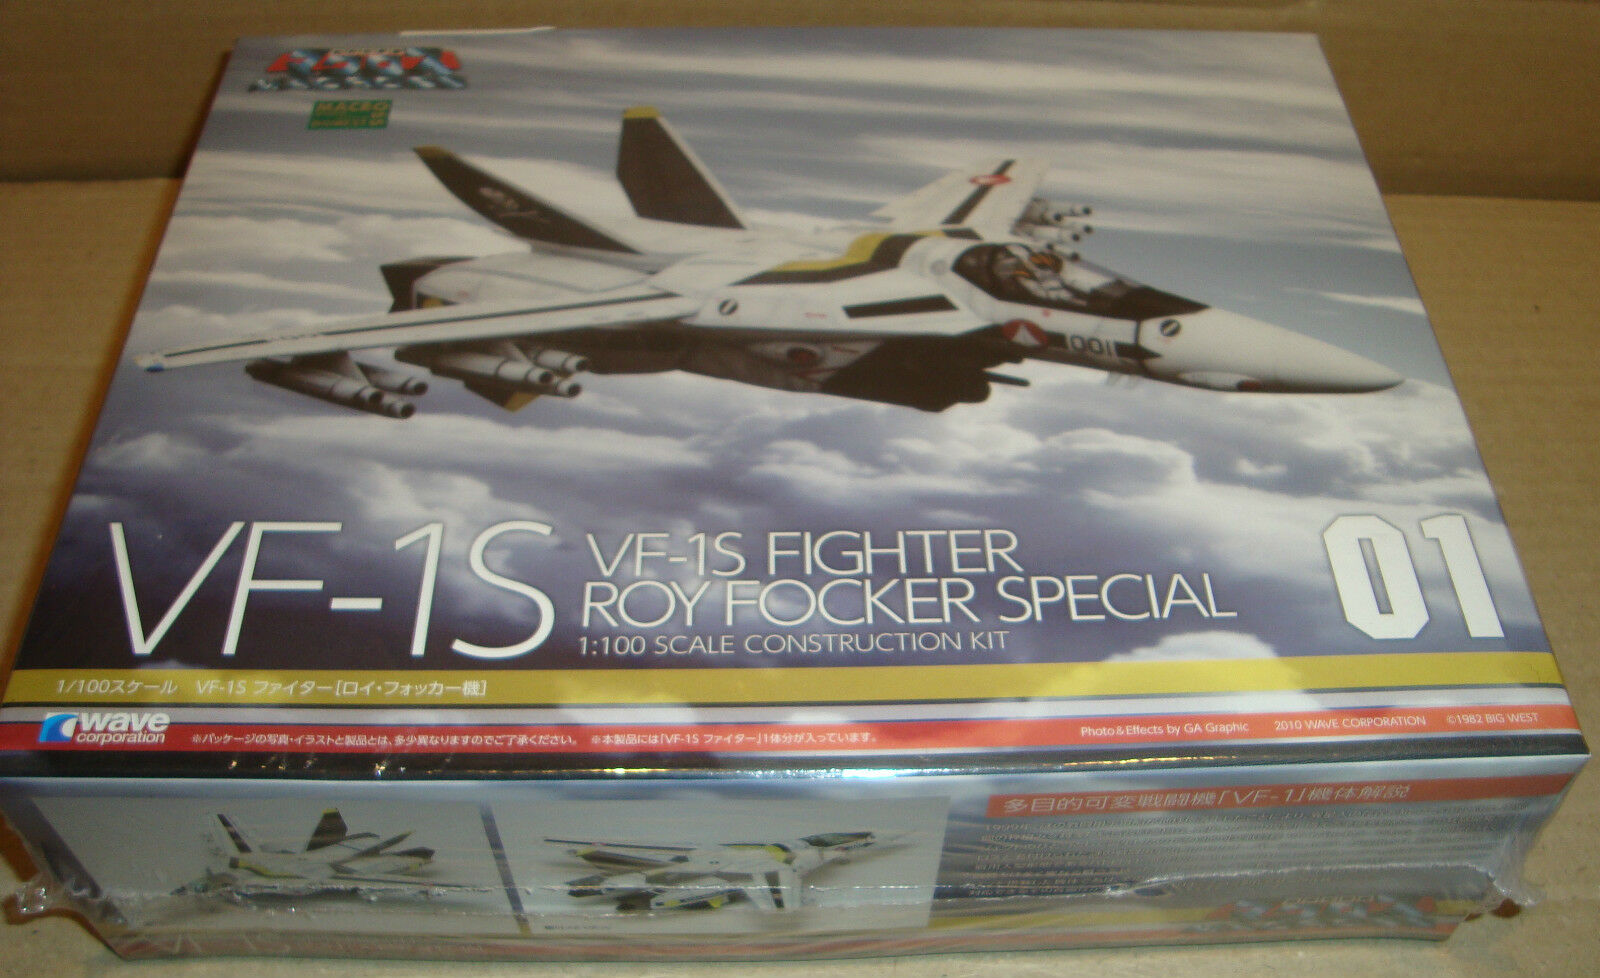 MACROSS VF-1S FIGHTER ROY FOCKER SPECIAL 01 1 100 SCALE CONSTRUCTION KIT WAVE